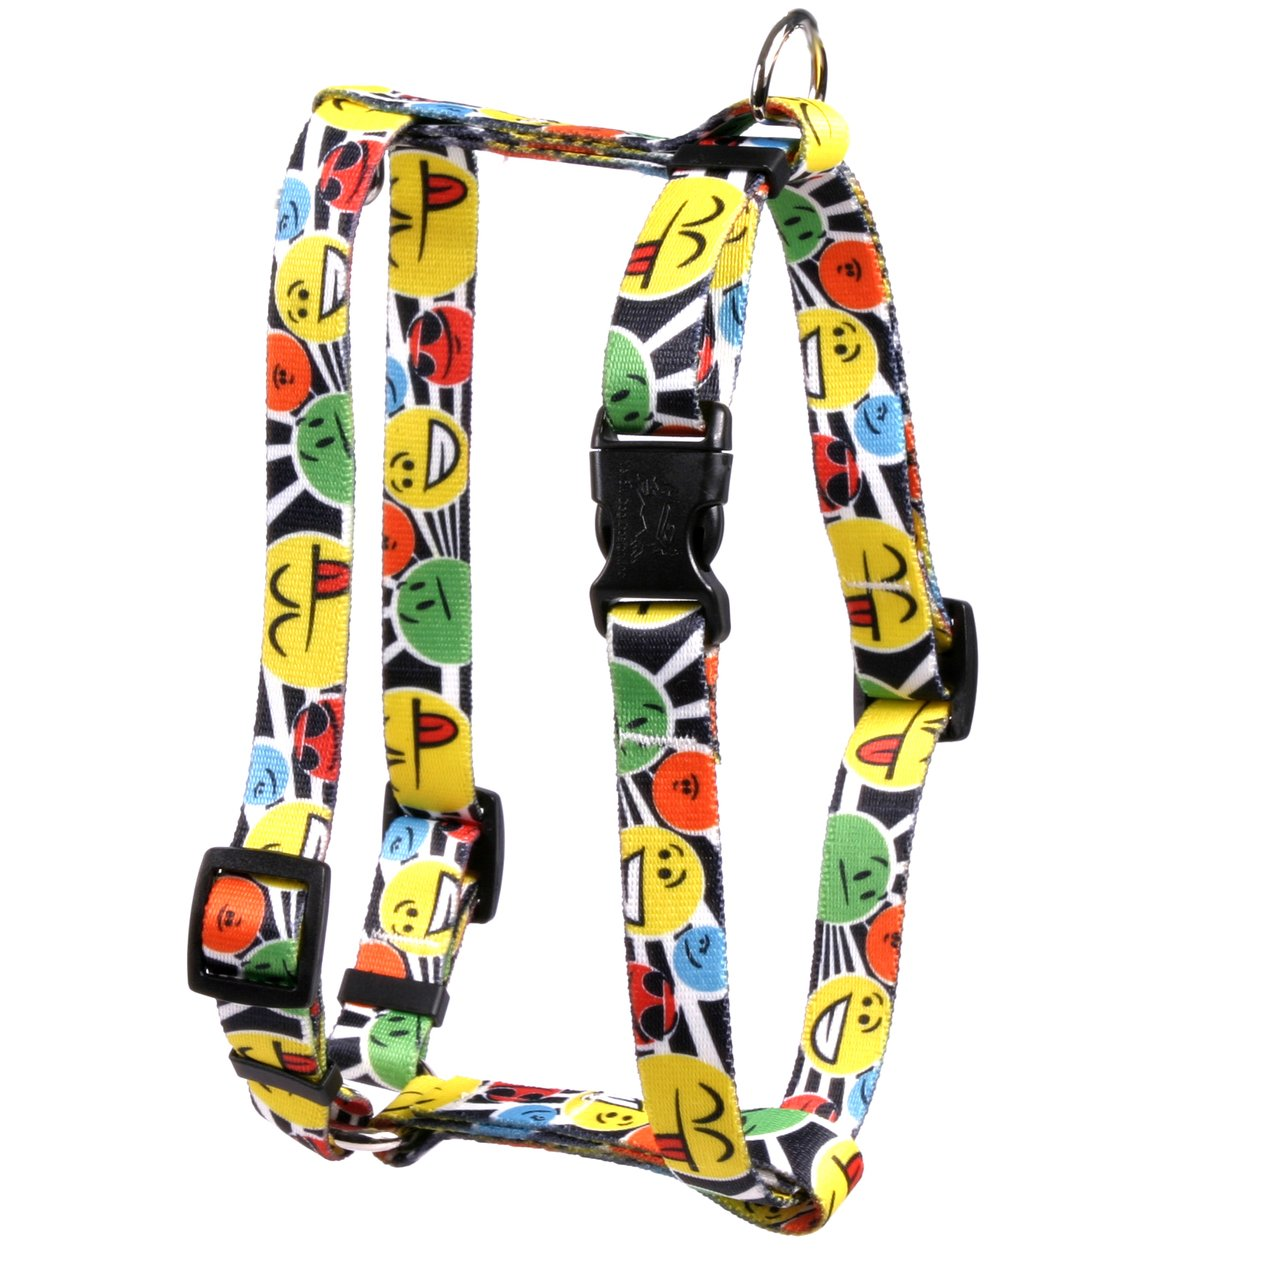 Yellow Dog Design Smiles Roman Style H Dog Harness-X-Large-1'' Wide and fits Chest Circumference of 28 to 36''